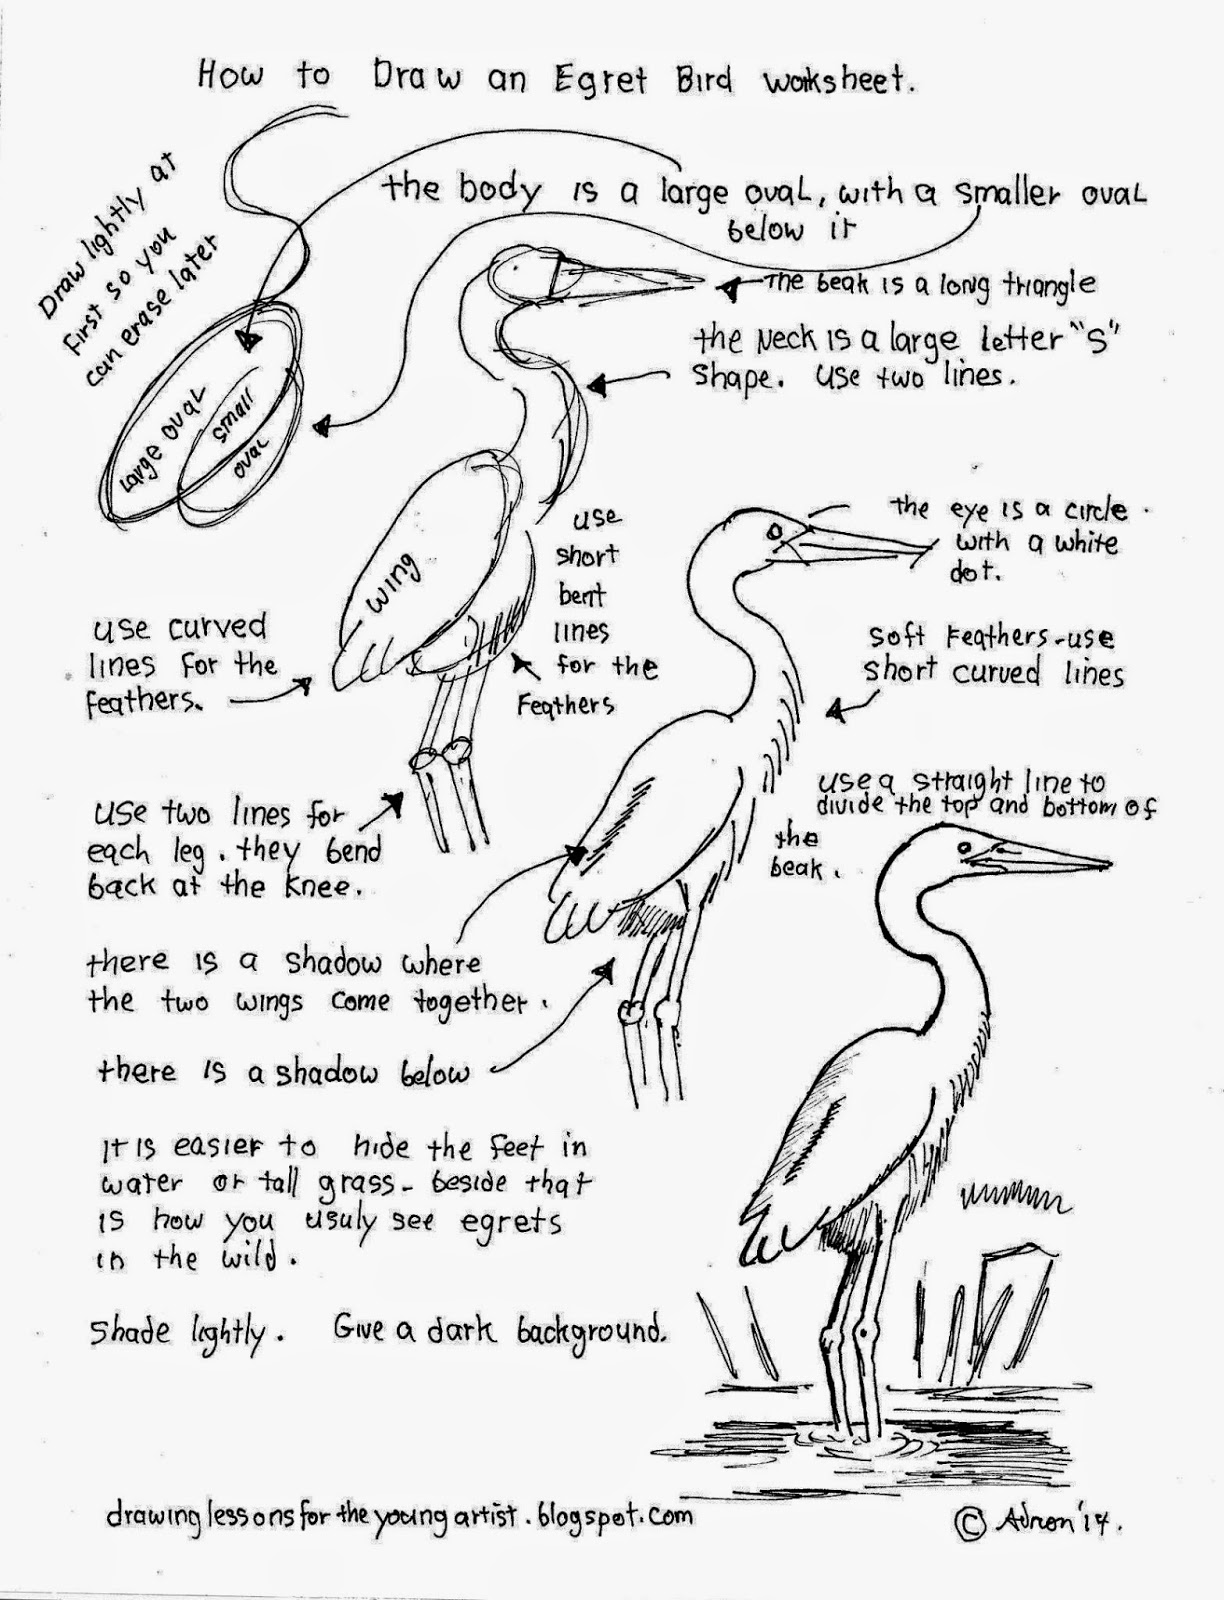 How To Draw Worksheets For The Young Artist How To Draw An Egret Bird Free Worksheet